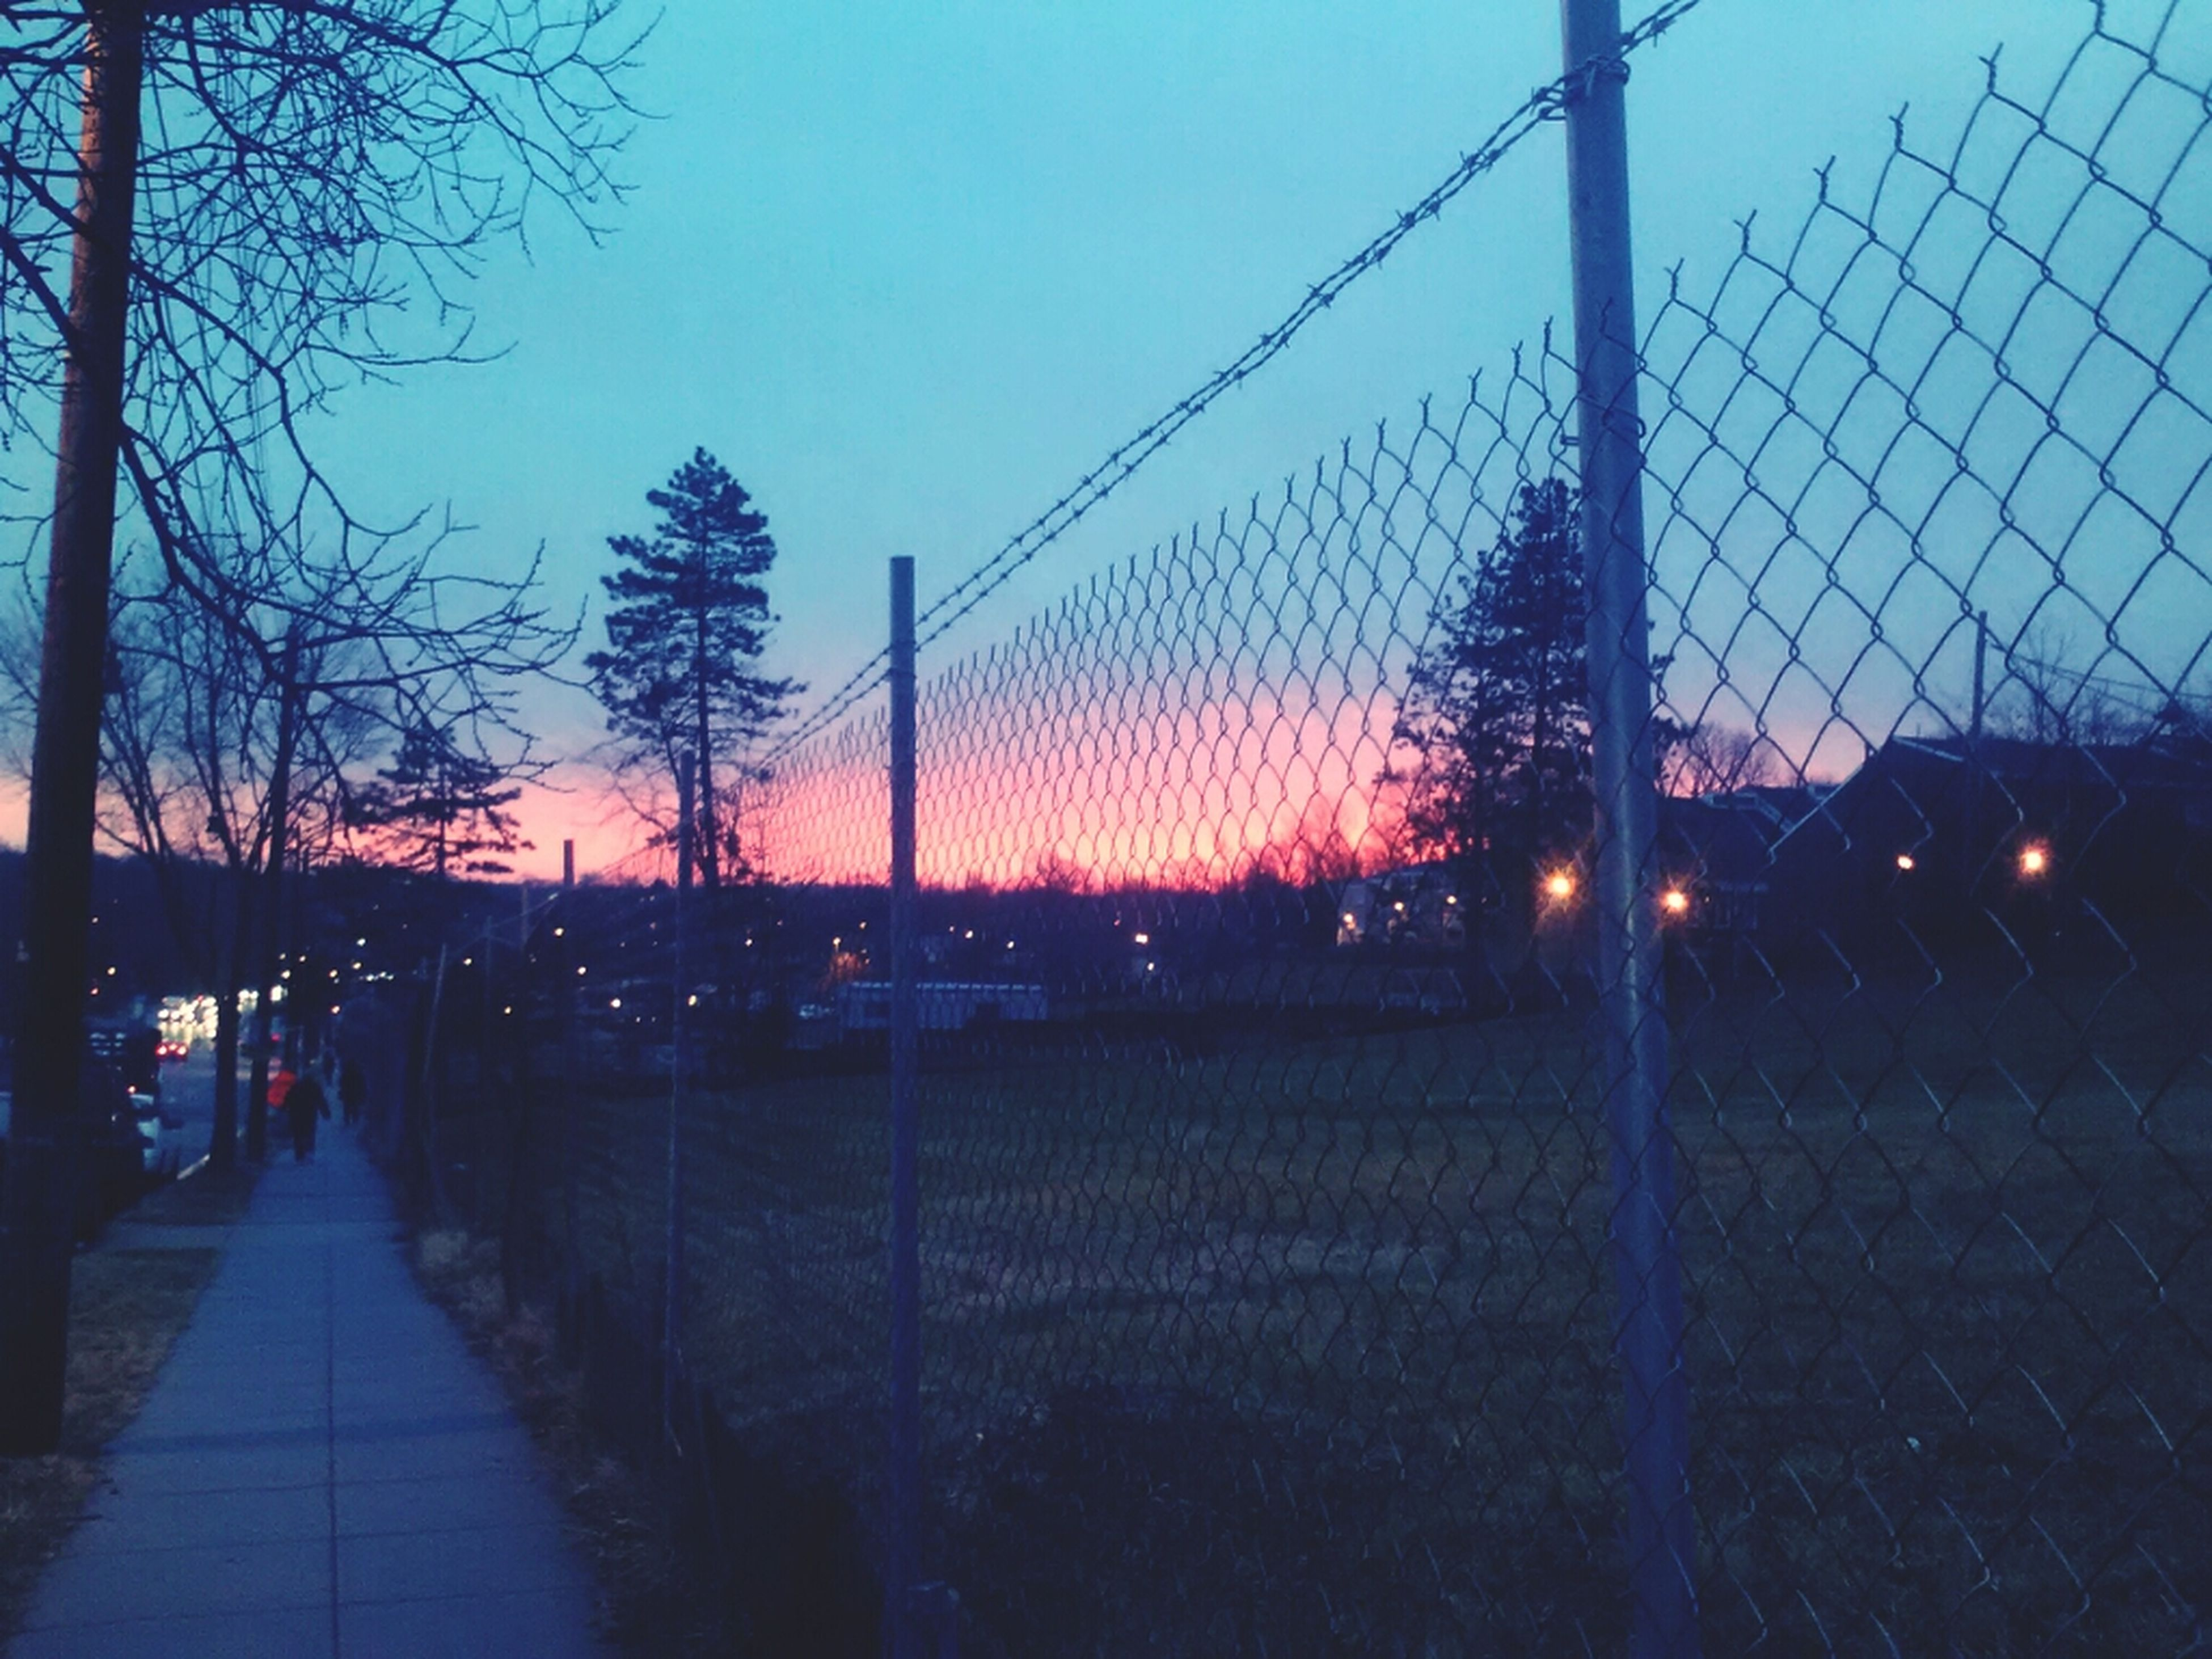 sunset, fence, sky, clear sky, chainlink fence, illuminated, street light, silhouette, protection, built structure, safety, city, dusk, architecture, tree, outdoors, railing, road, connection, metal